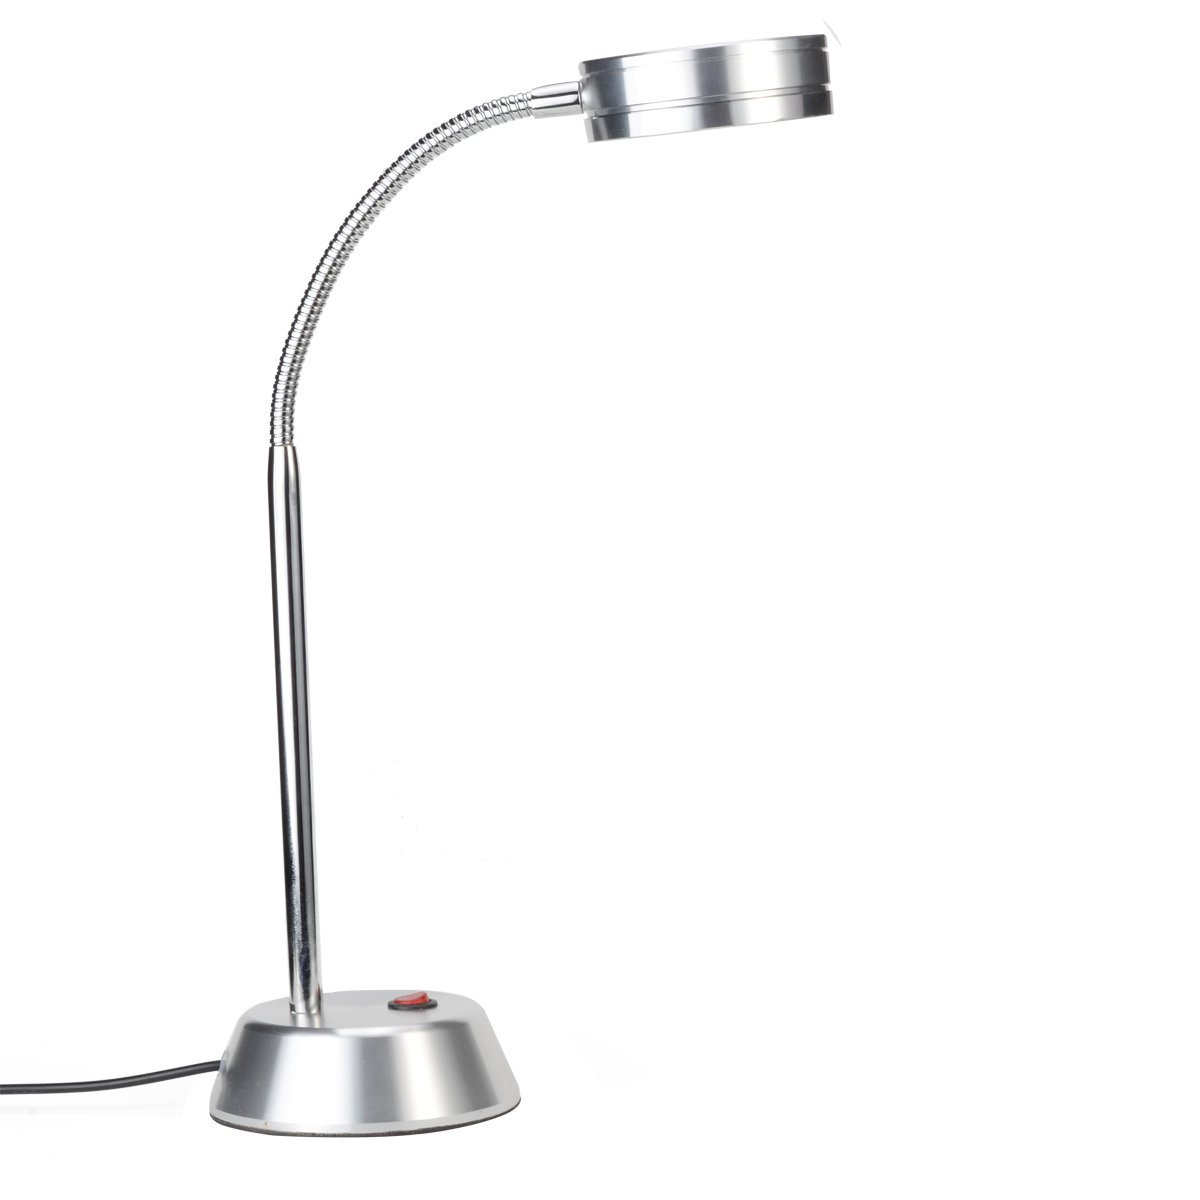 Smart/Simple Designed LED Desk Lamp with Chromed Flexible Gooseneck, Aluminum Material Base (Cold White Light)